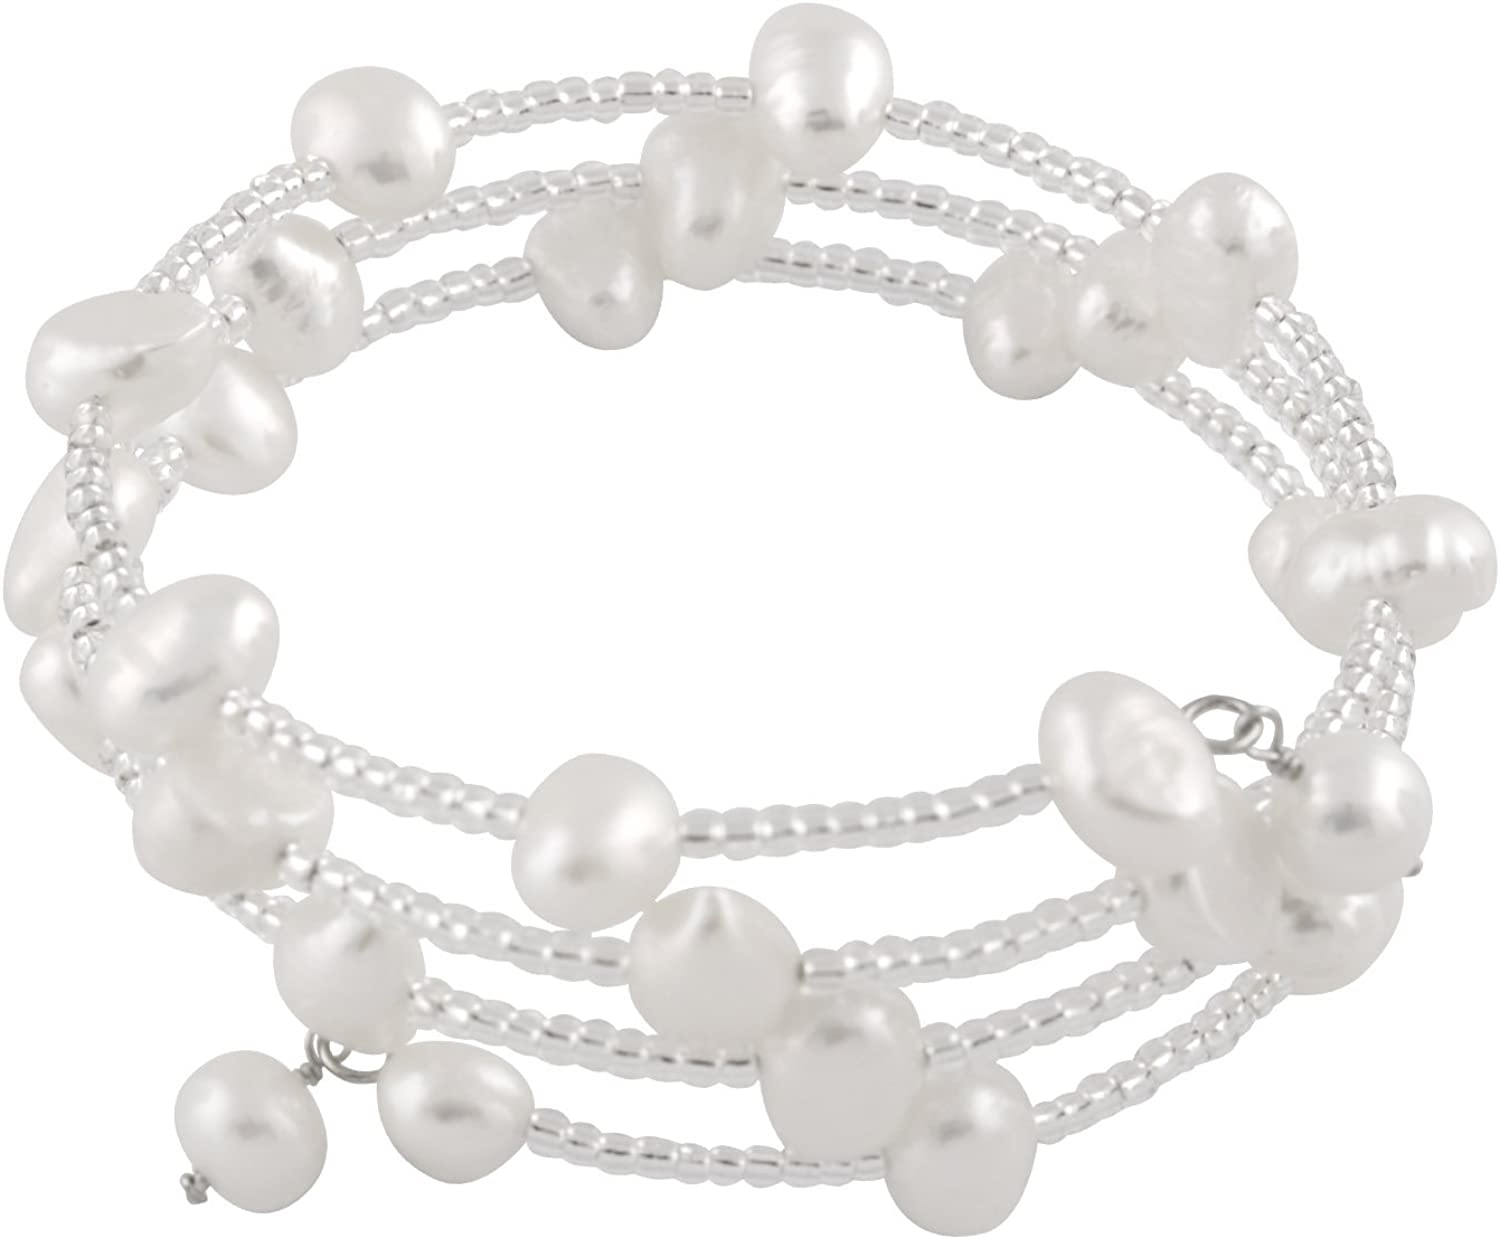 Sterling Silver Flex Fit Bangle Wrap Bracelet 3-Row Handpicked AA 6-7mm Baroque Freshwater Cultured Pearls ✦ June Birthstone ✦